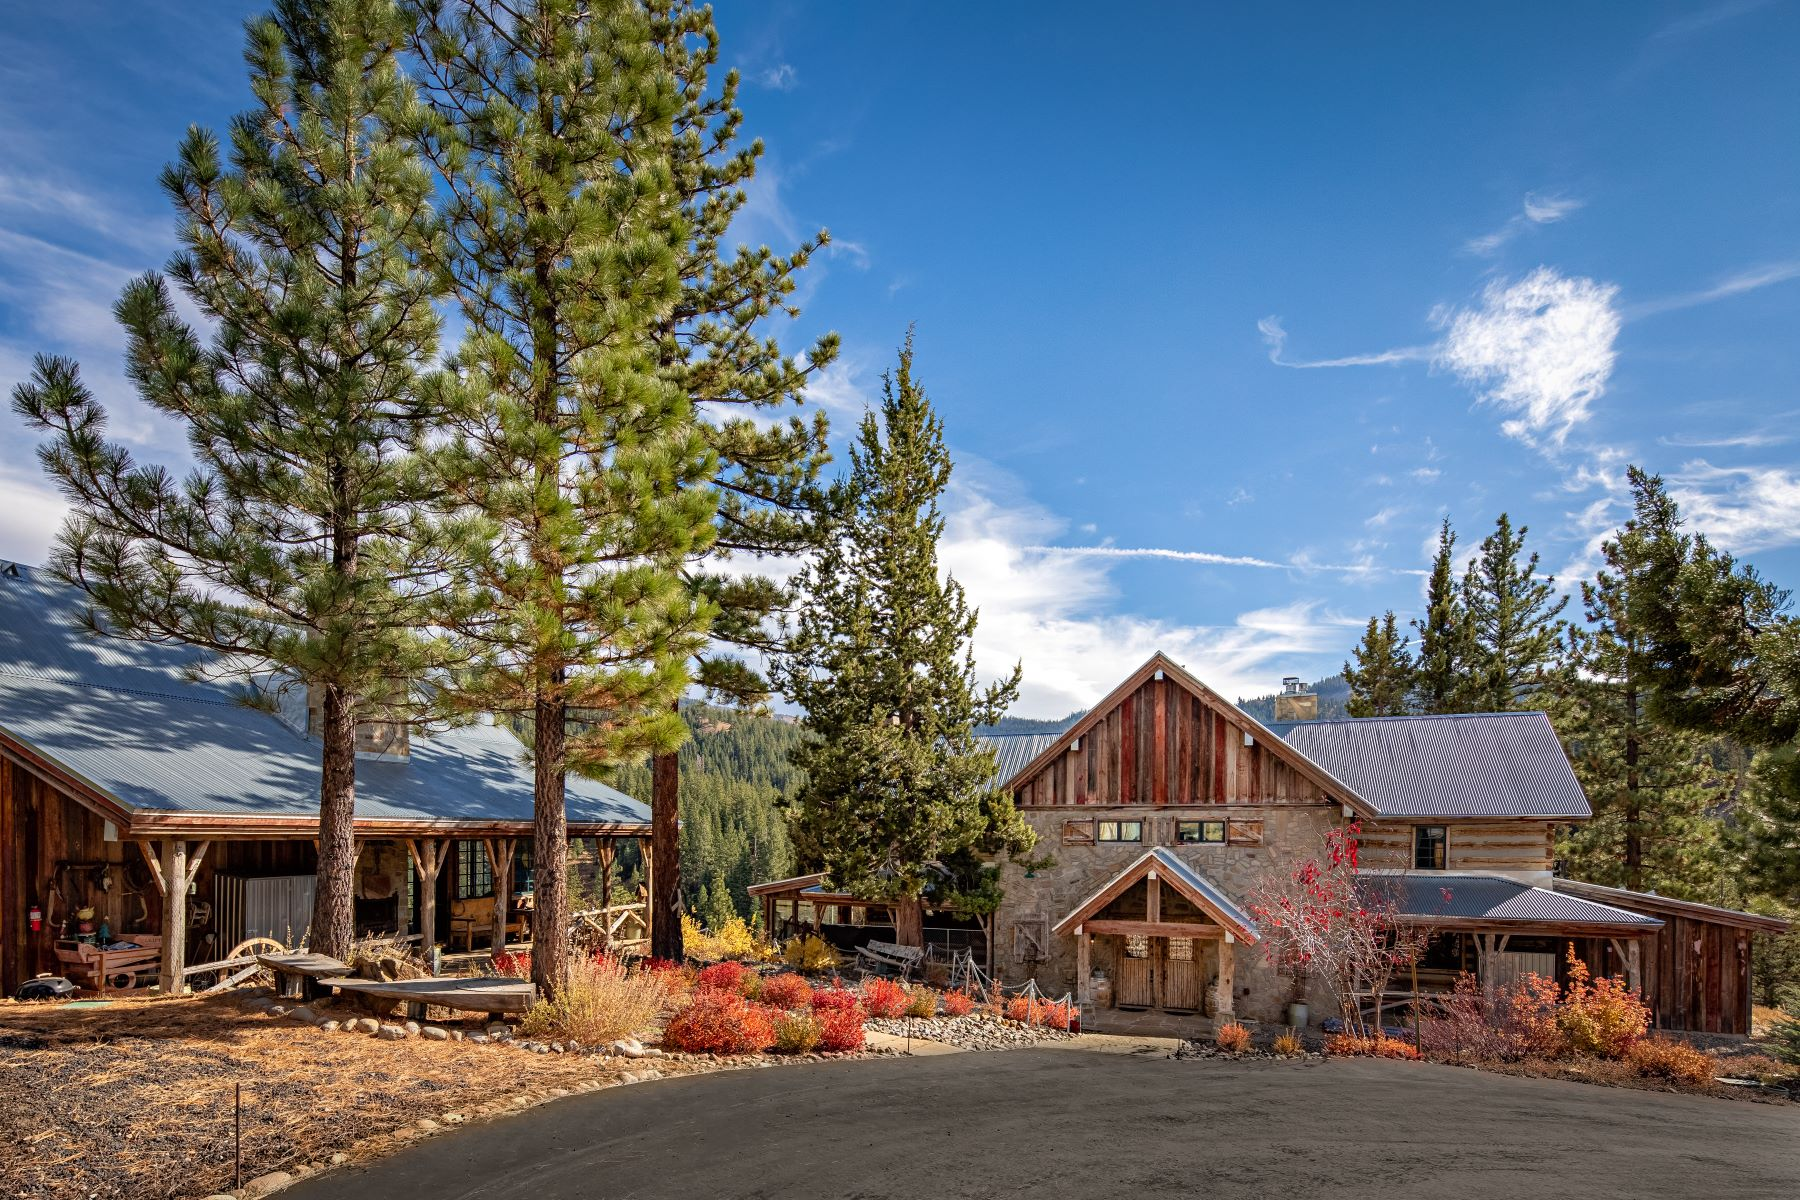 Property for Active at 19214 La Mirada Rd., Truckee, CA 96161 19214 La Mirada Rd. Truckee, California 96161 United States